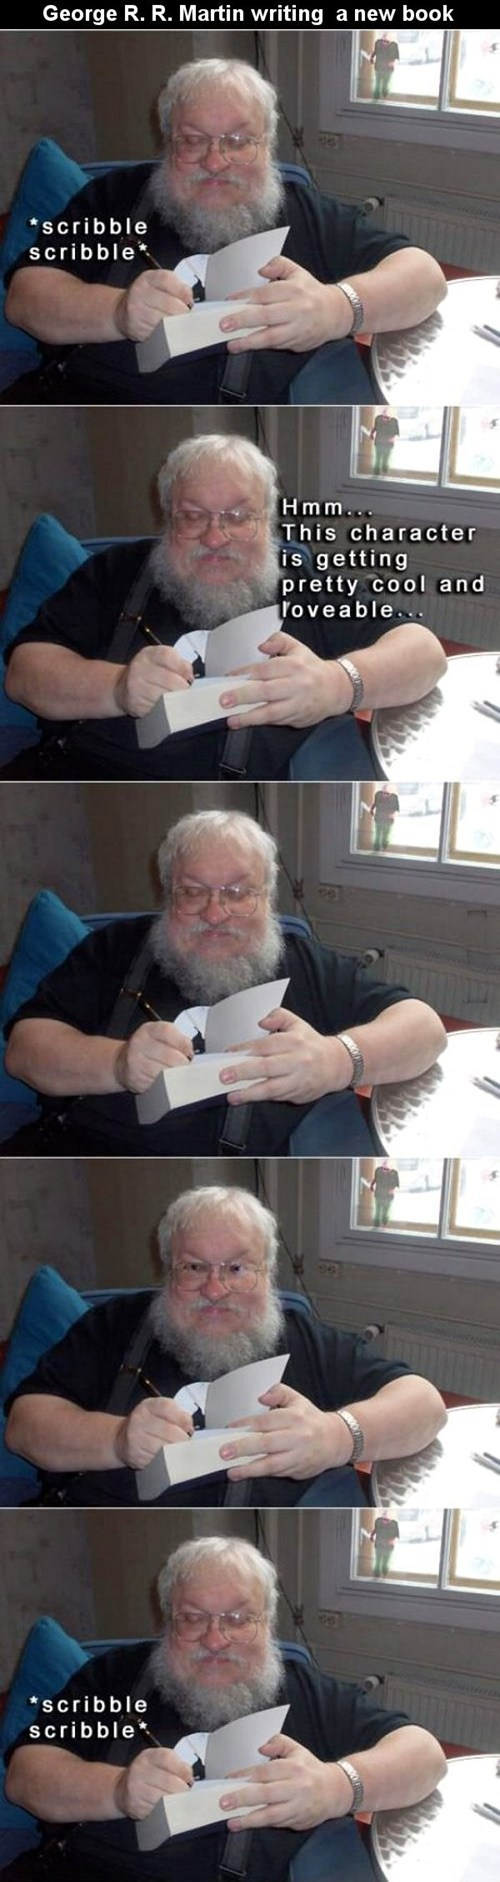 writers,Game of Thrones,george r r martin